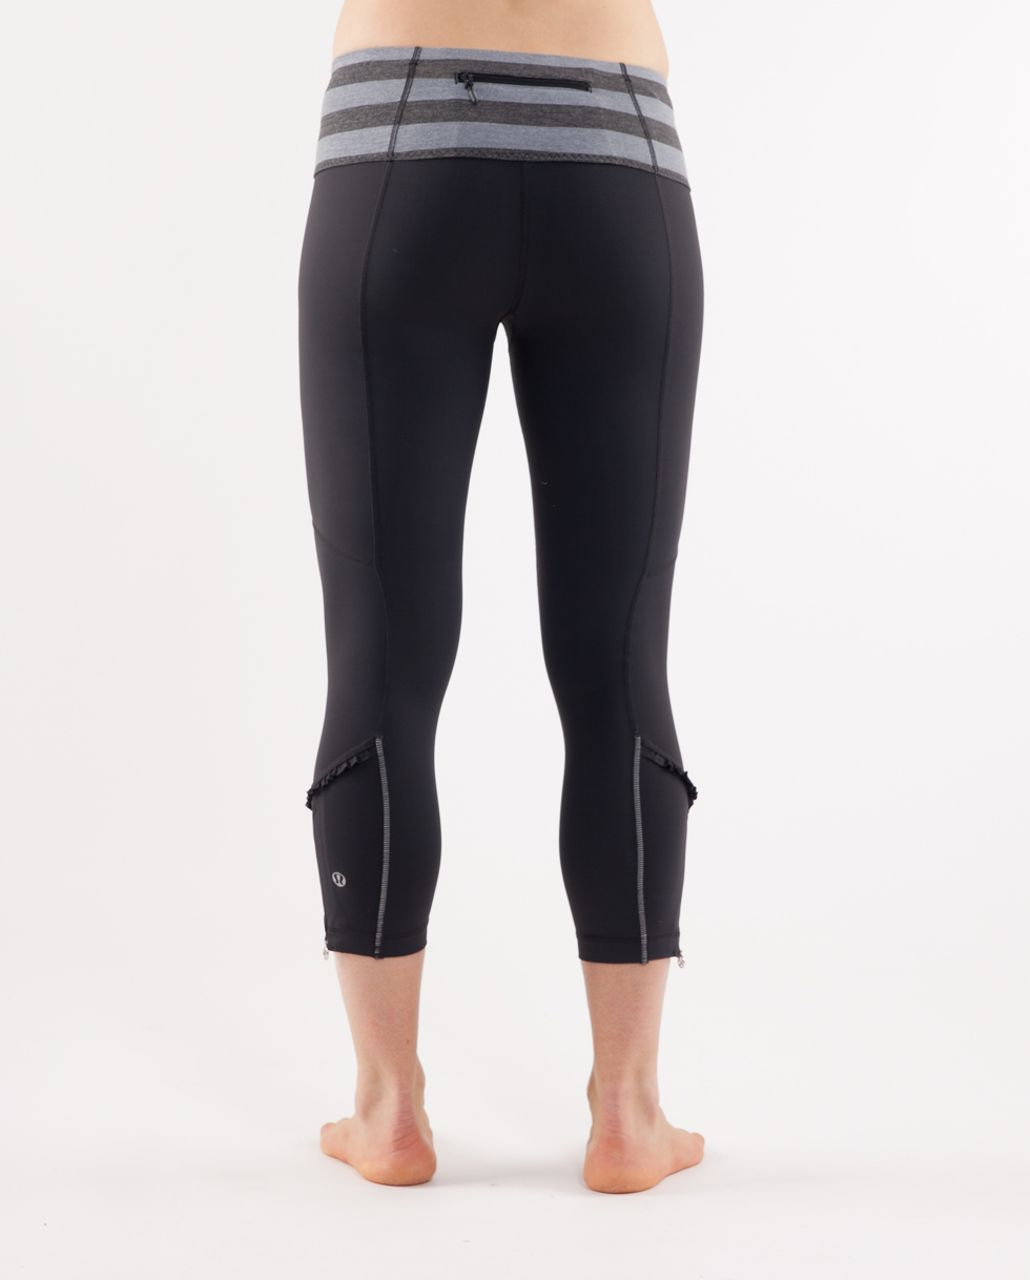 Lululemon Run:  Stay On Course Crop - Deep Coal /  Deep Coal Micro Macro Stripe